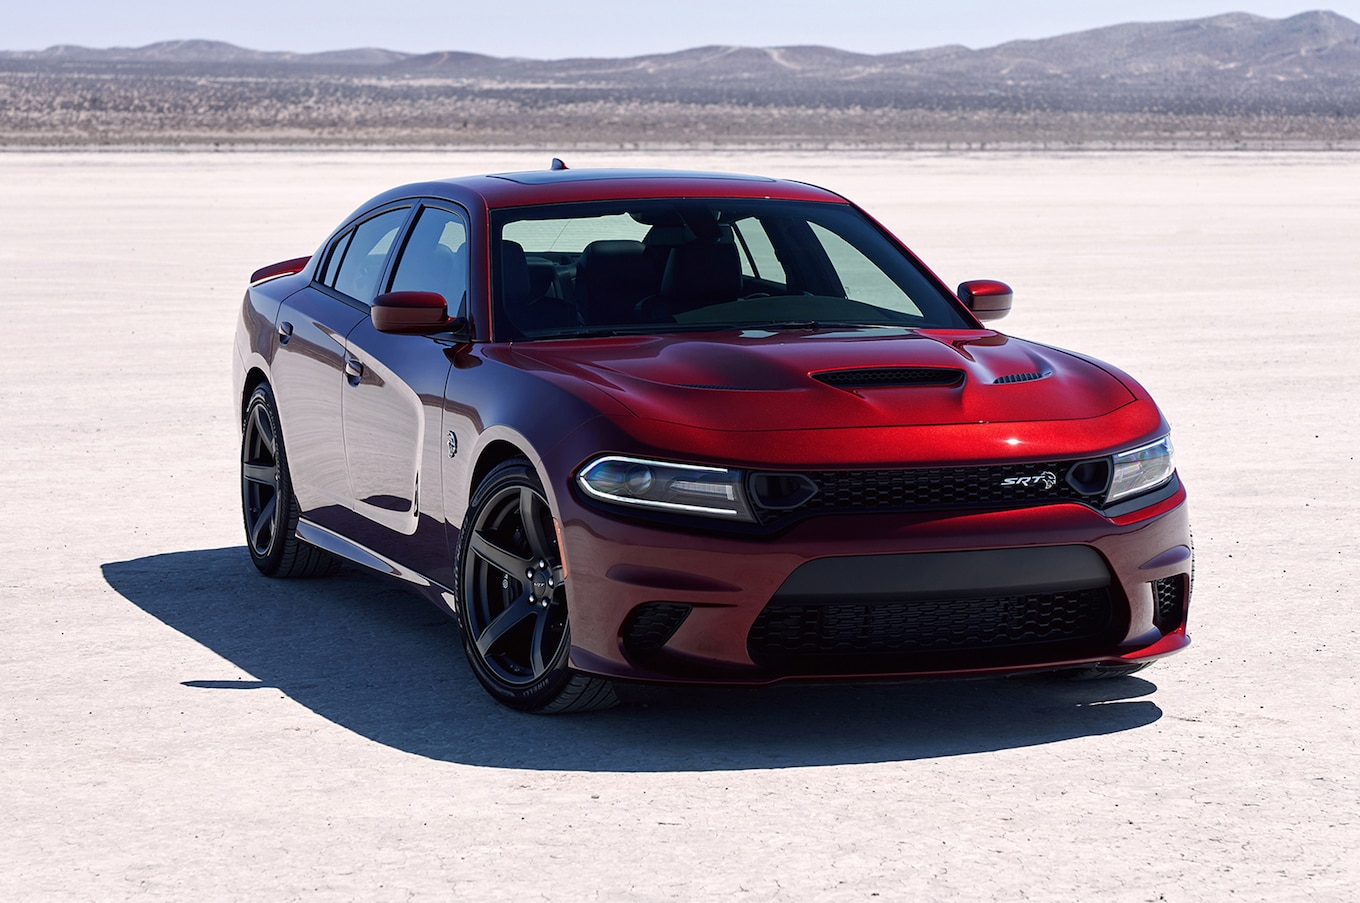 91 Best 2020 Dodge Charger Images